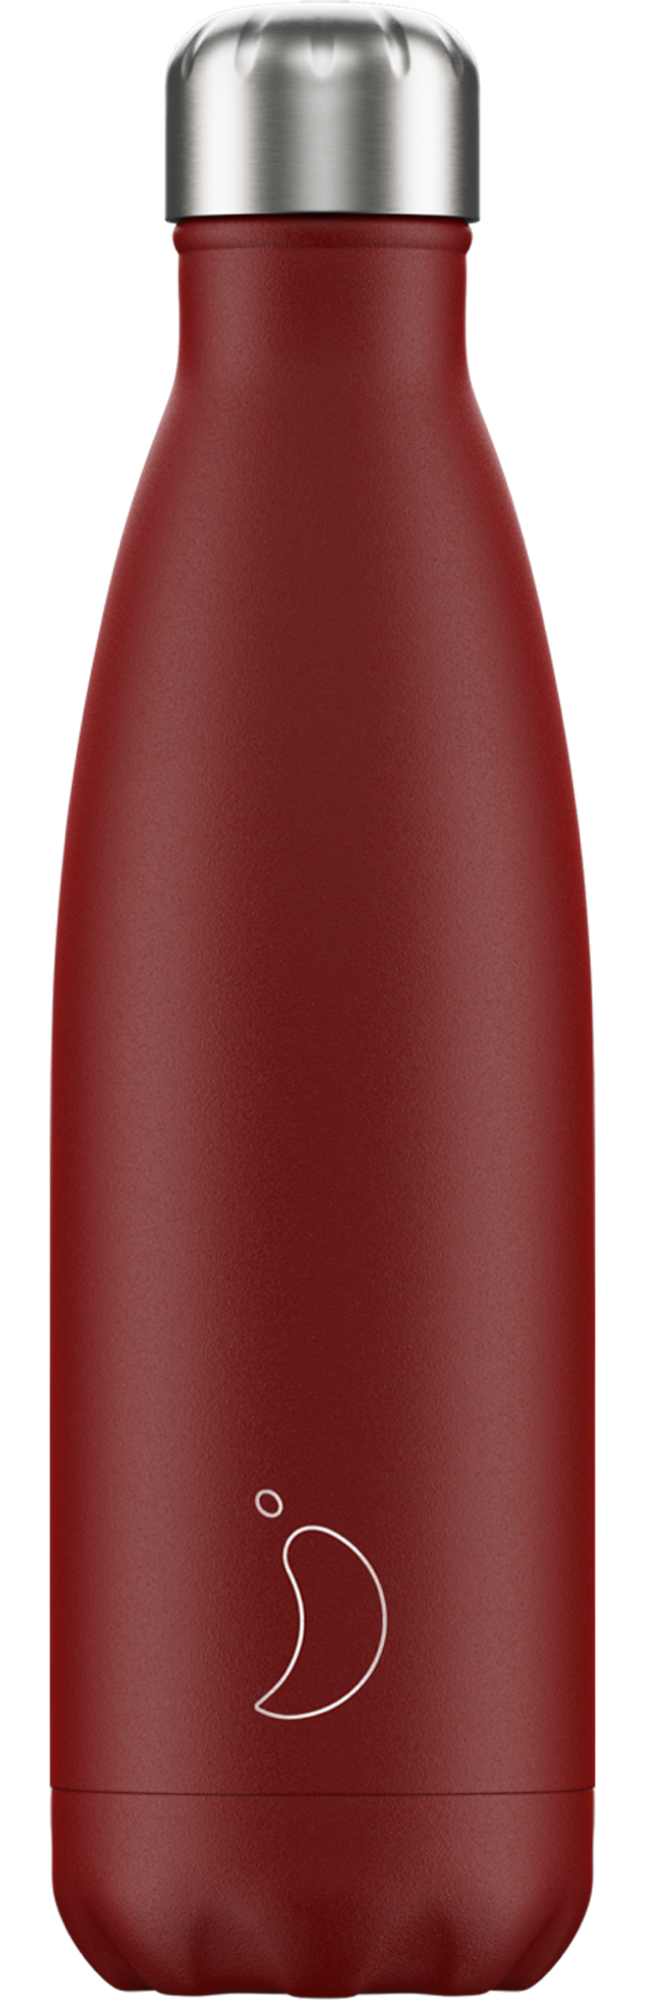 CHILLY'S BOTTLE 500ML - [MATTE] RED